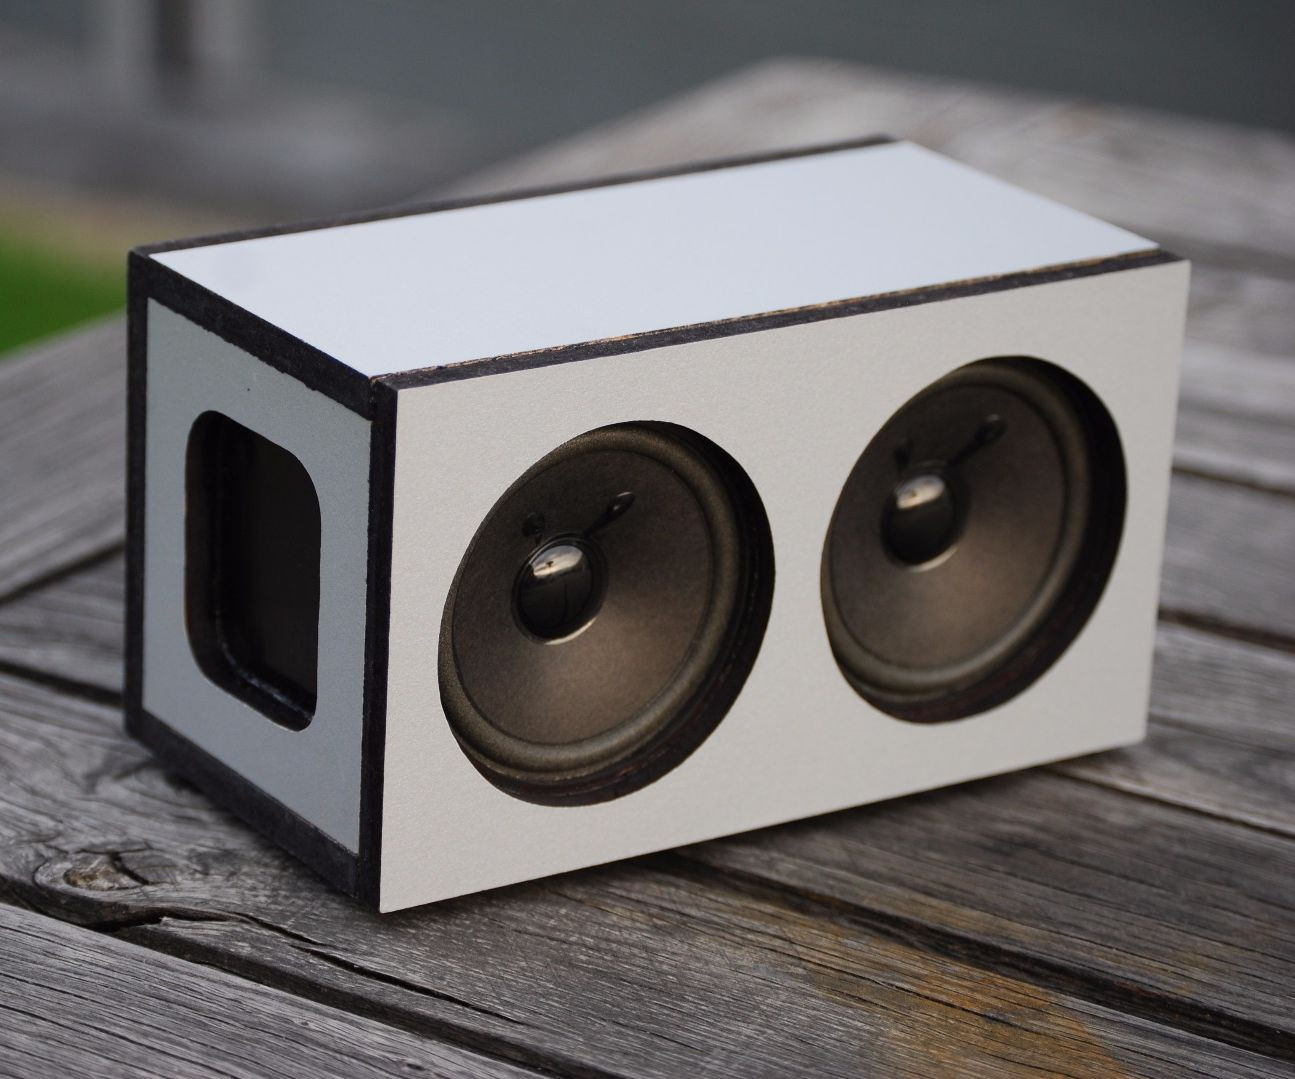 Best ideas about DIY Portable Speakers . Save or Pin Powerful Portable Bluetooth Speaker 2x5W Now.